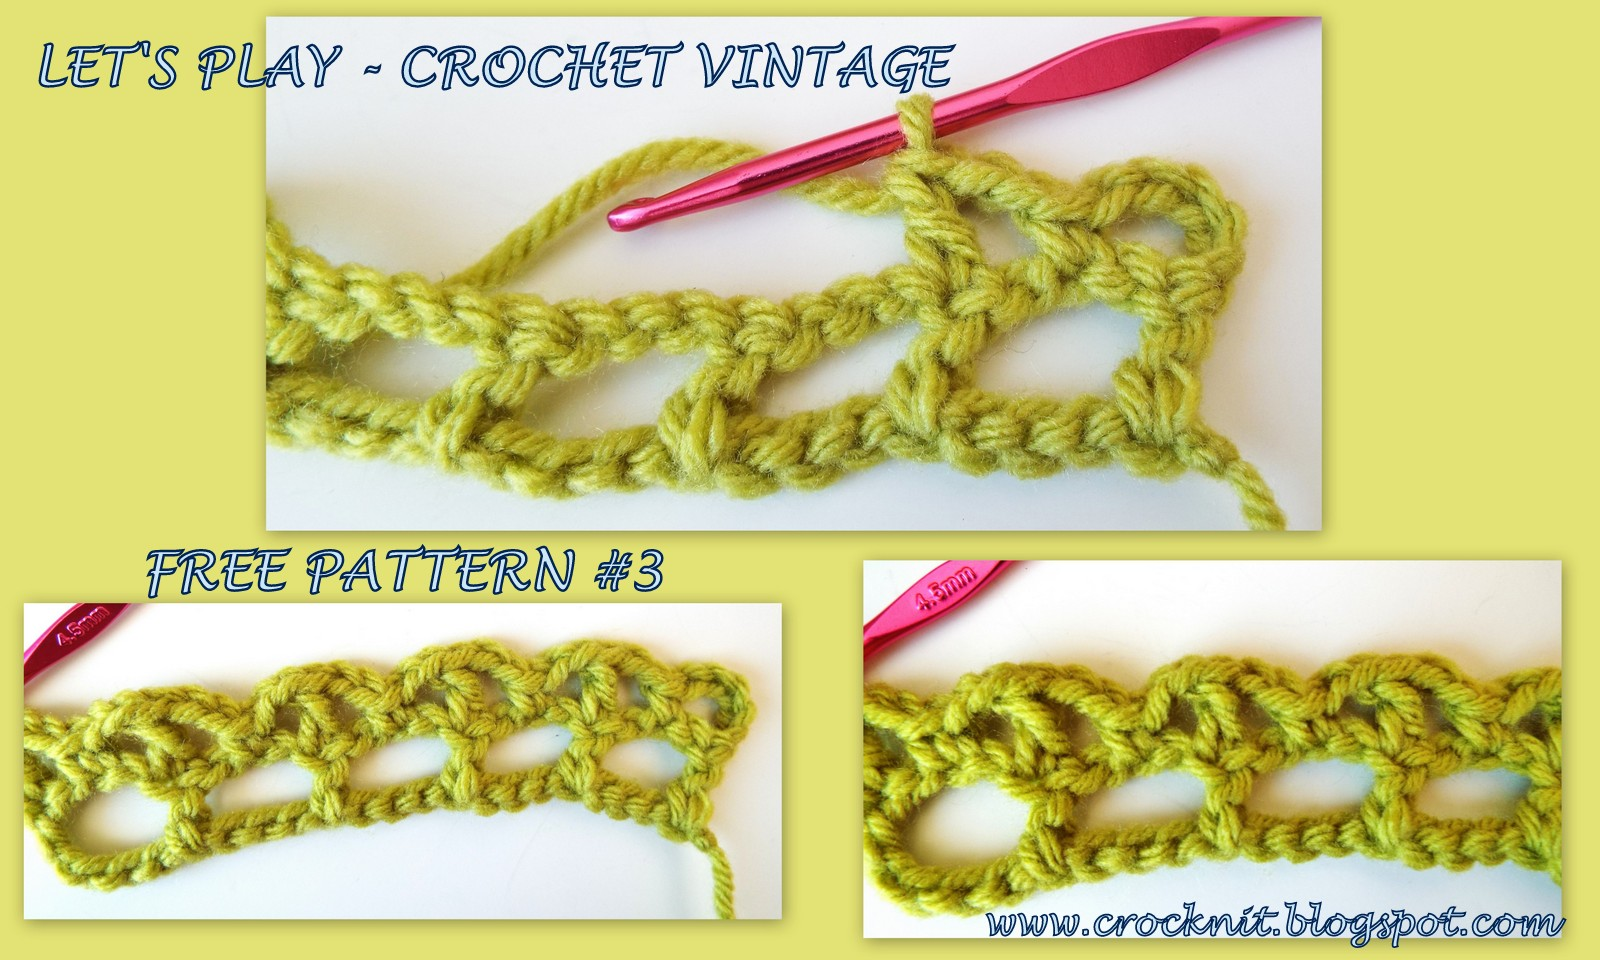 Crochet Stitch Rtrf : Row 3: Ch6 (counts as 1dc, ch3) *1dc in next dc, ch3, rep from * to ...